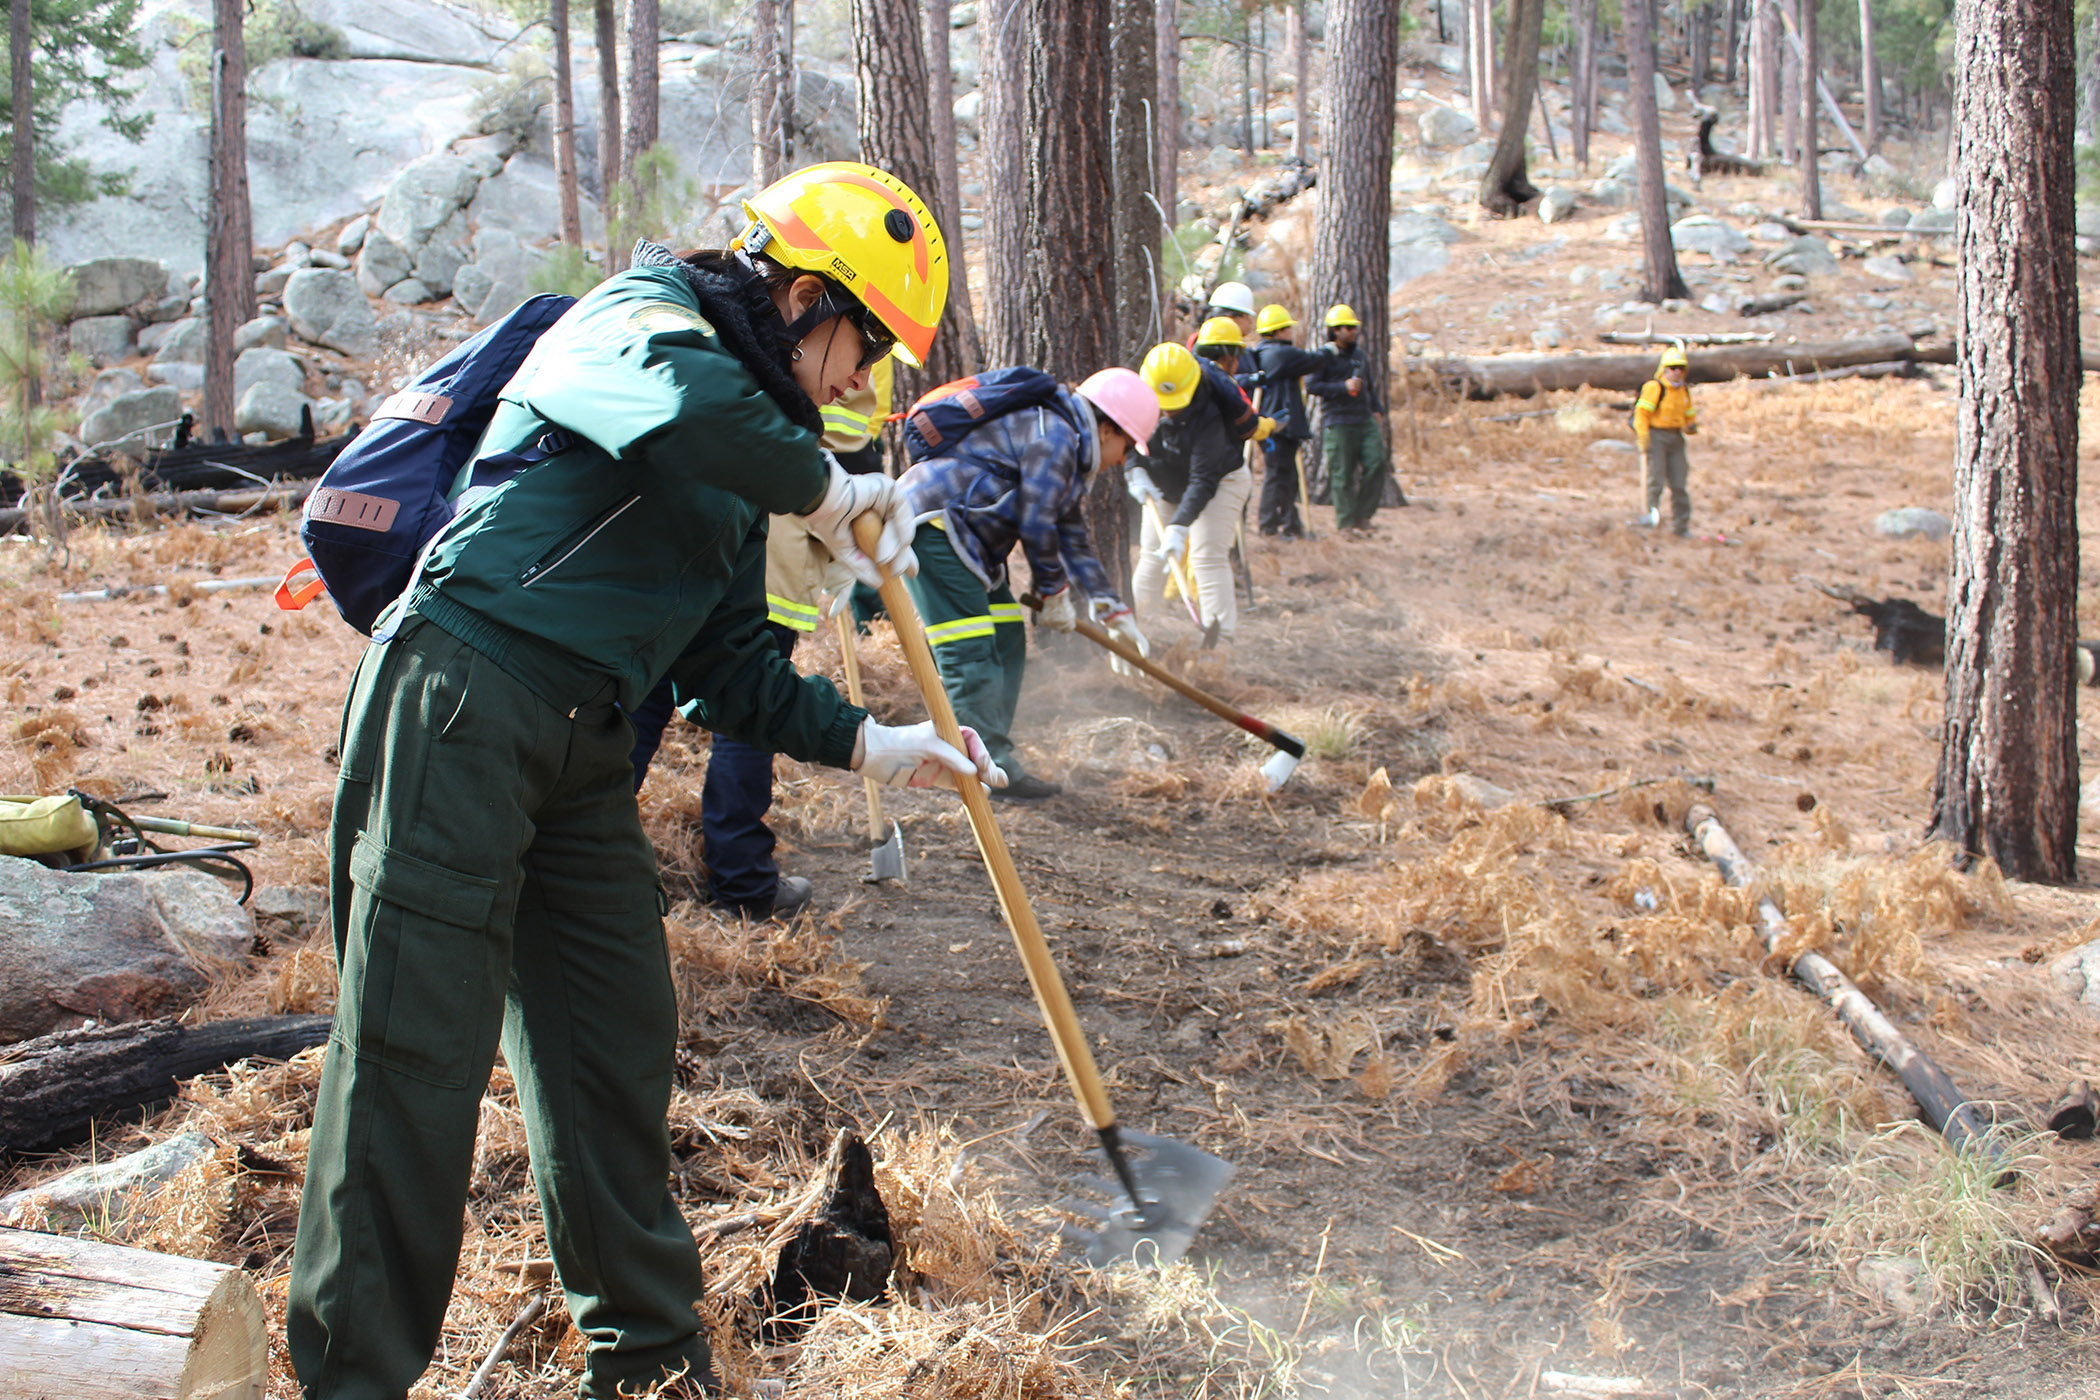 Photo: Women in safety gear use McLeod tool, Pulaski axe and other tools to clear brush and simulate building a fire line in forest.